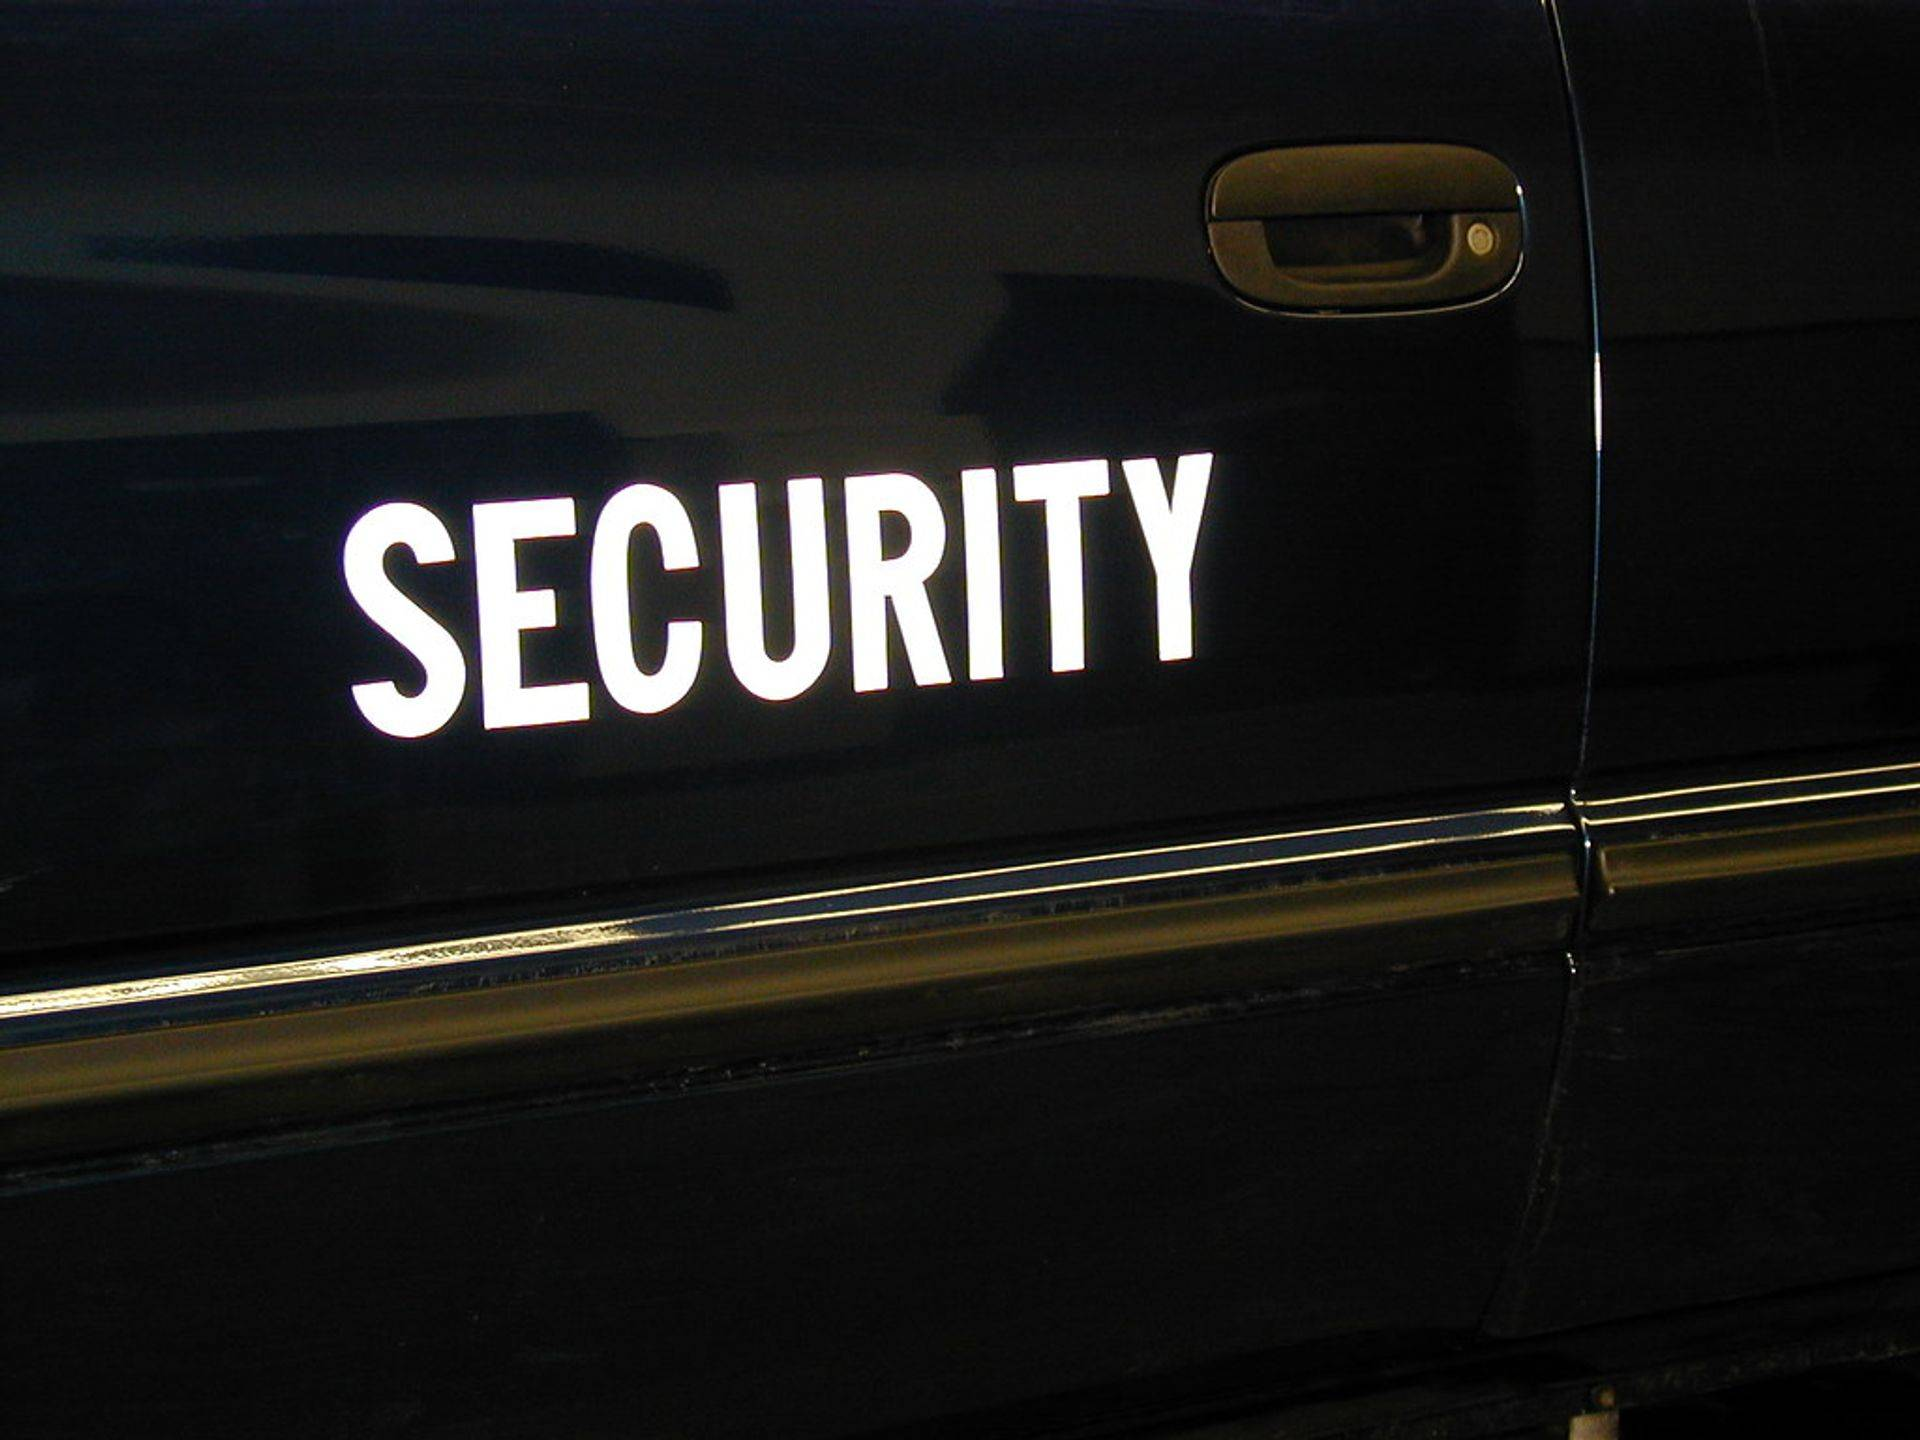 Security services Cleveland, Ohio